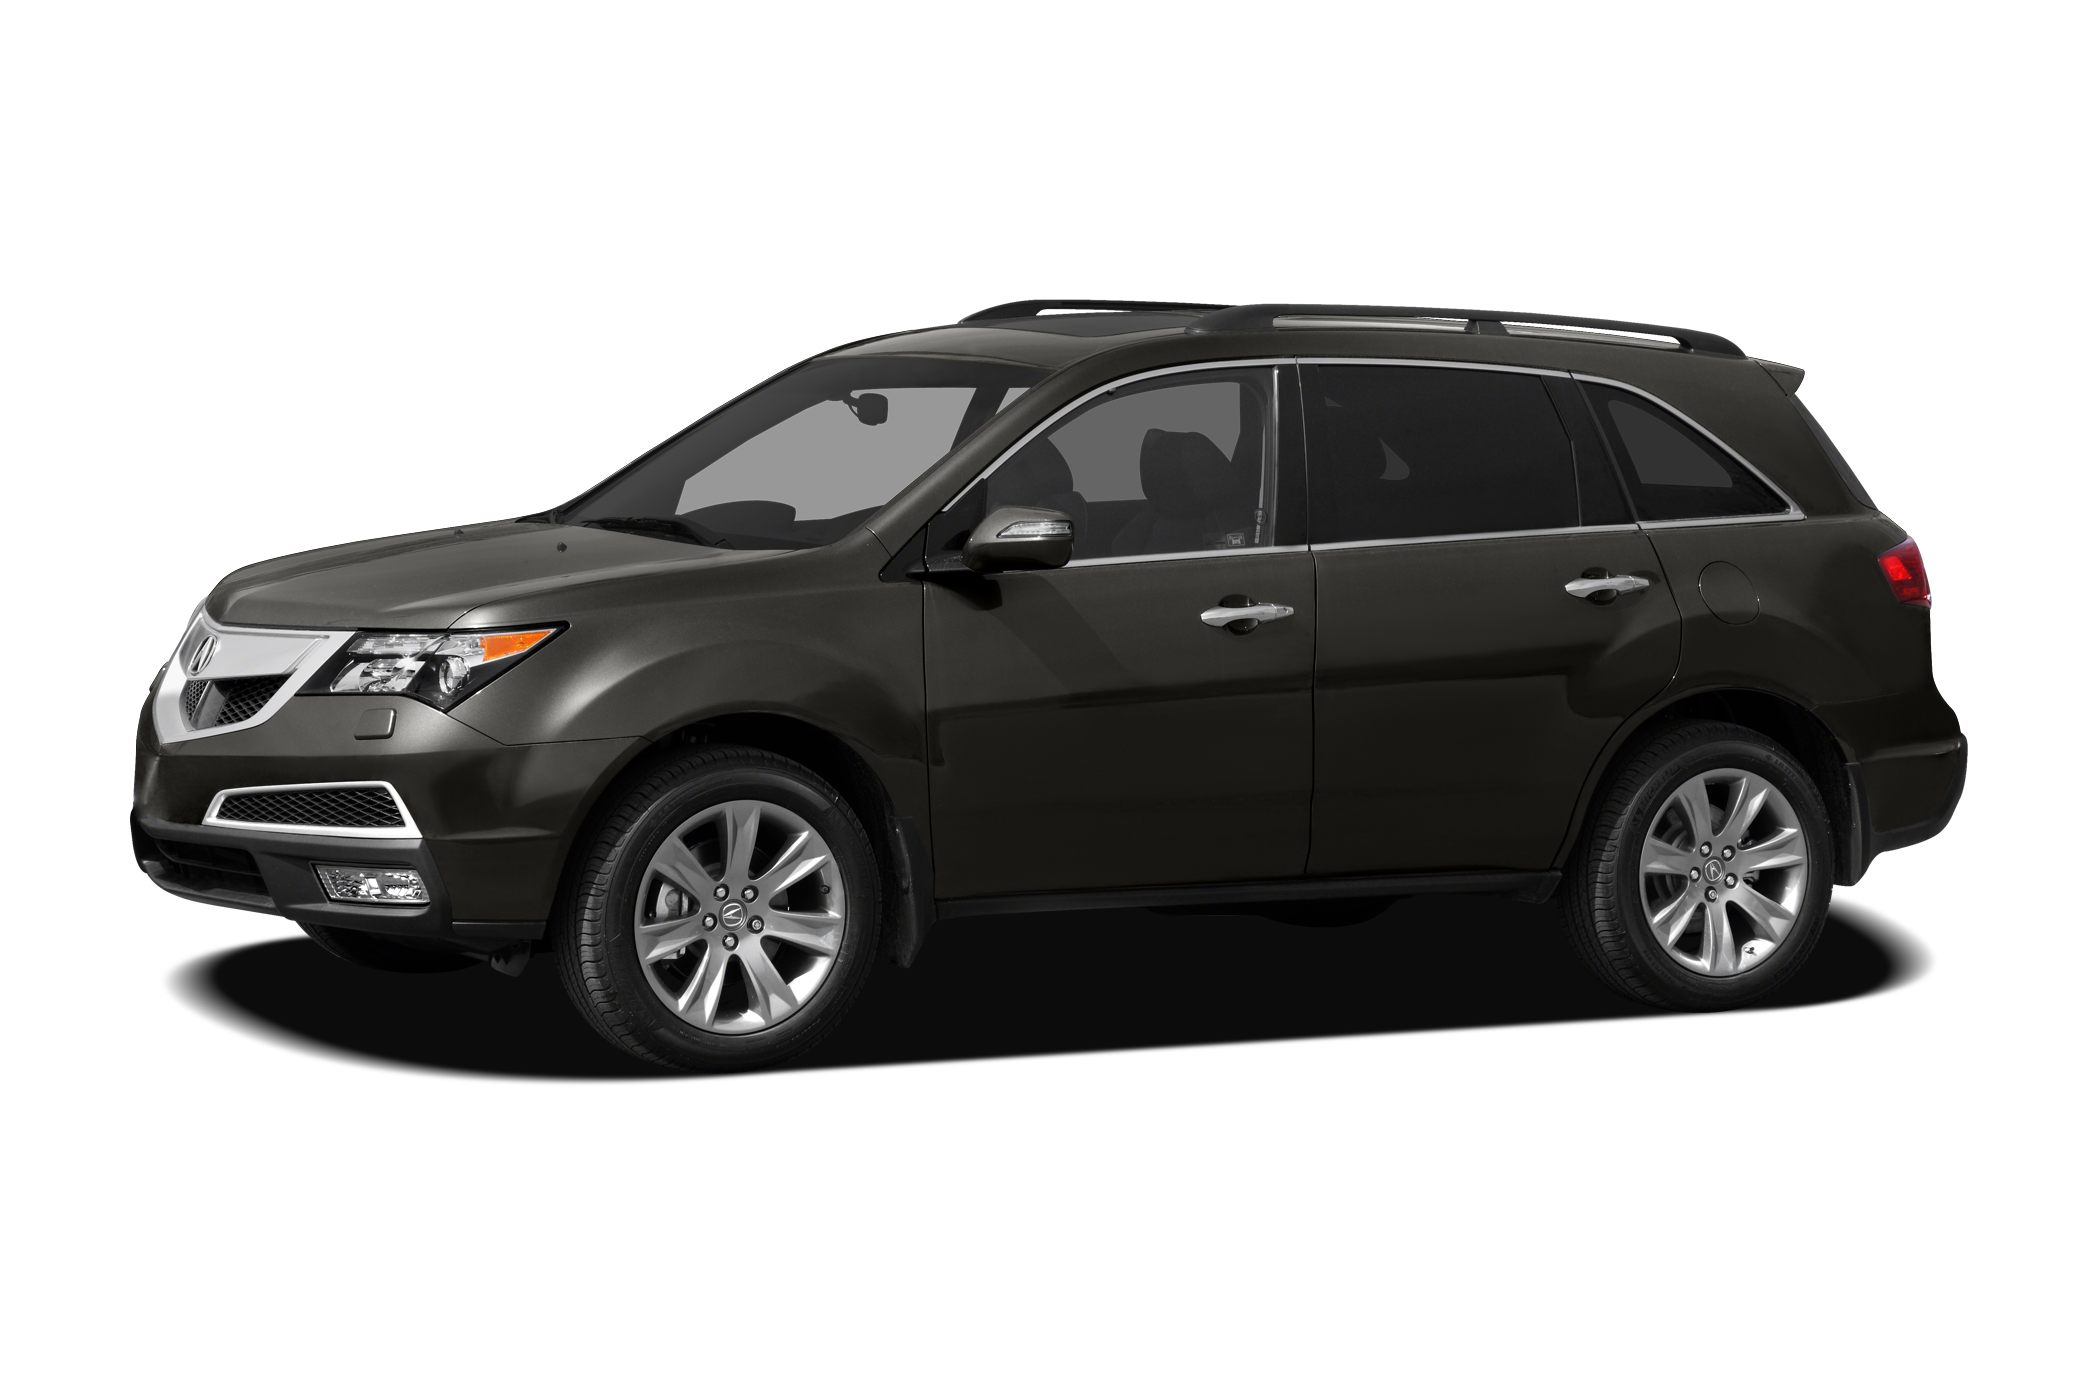 2012 Acura MDX 37 Technology Low Miles This 2012 Acura MDX Tech Pkg will sell fast New Engine